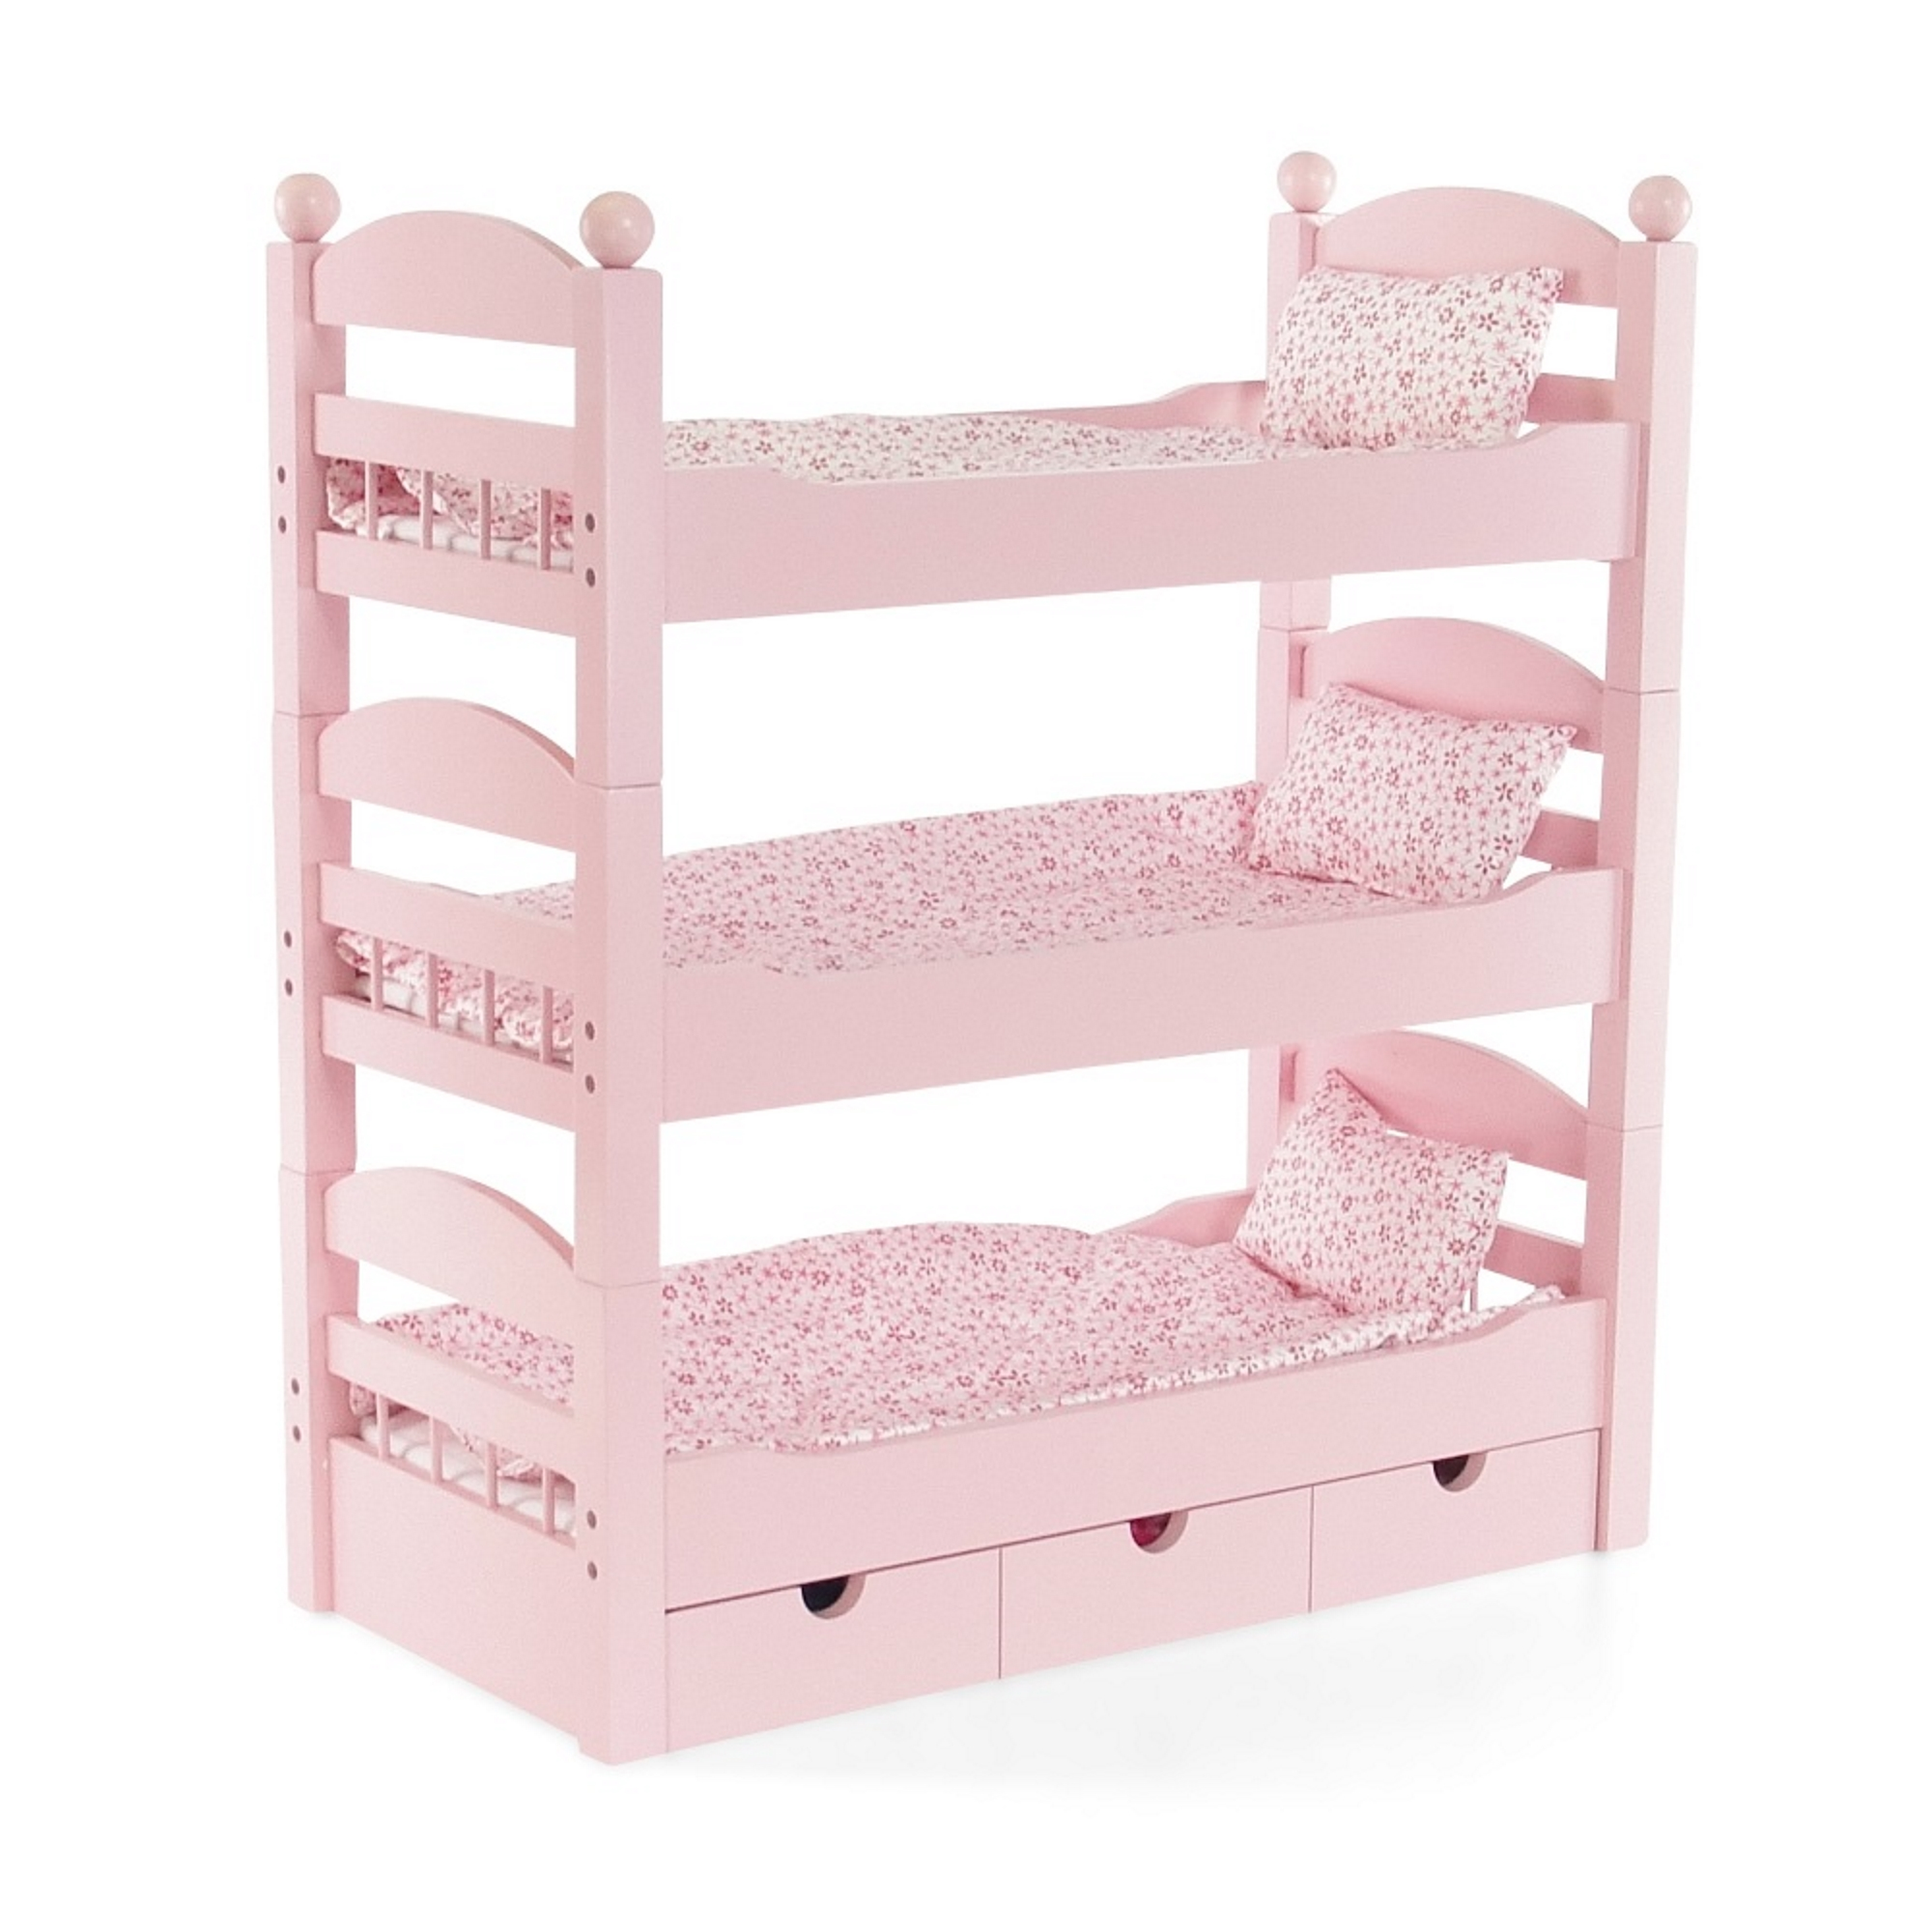 18 Inch Doll Triple Bunk Bed Stackable Wooden Furniture Made To